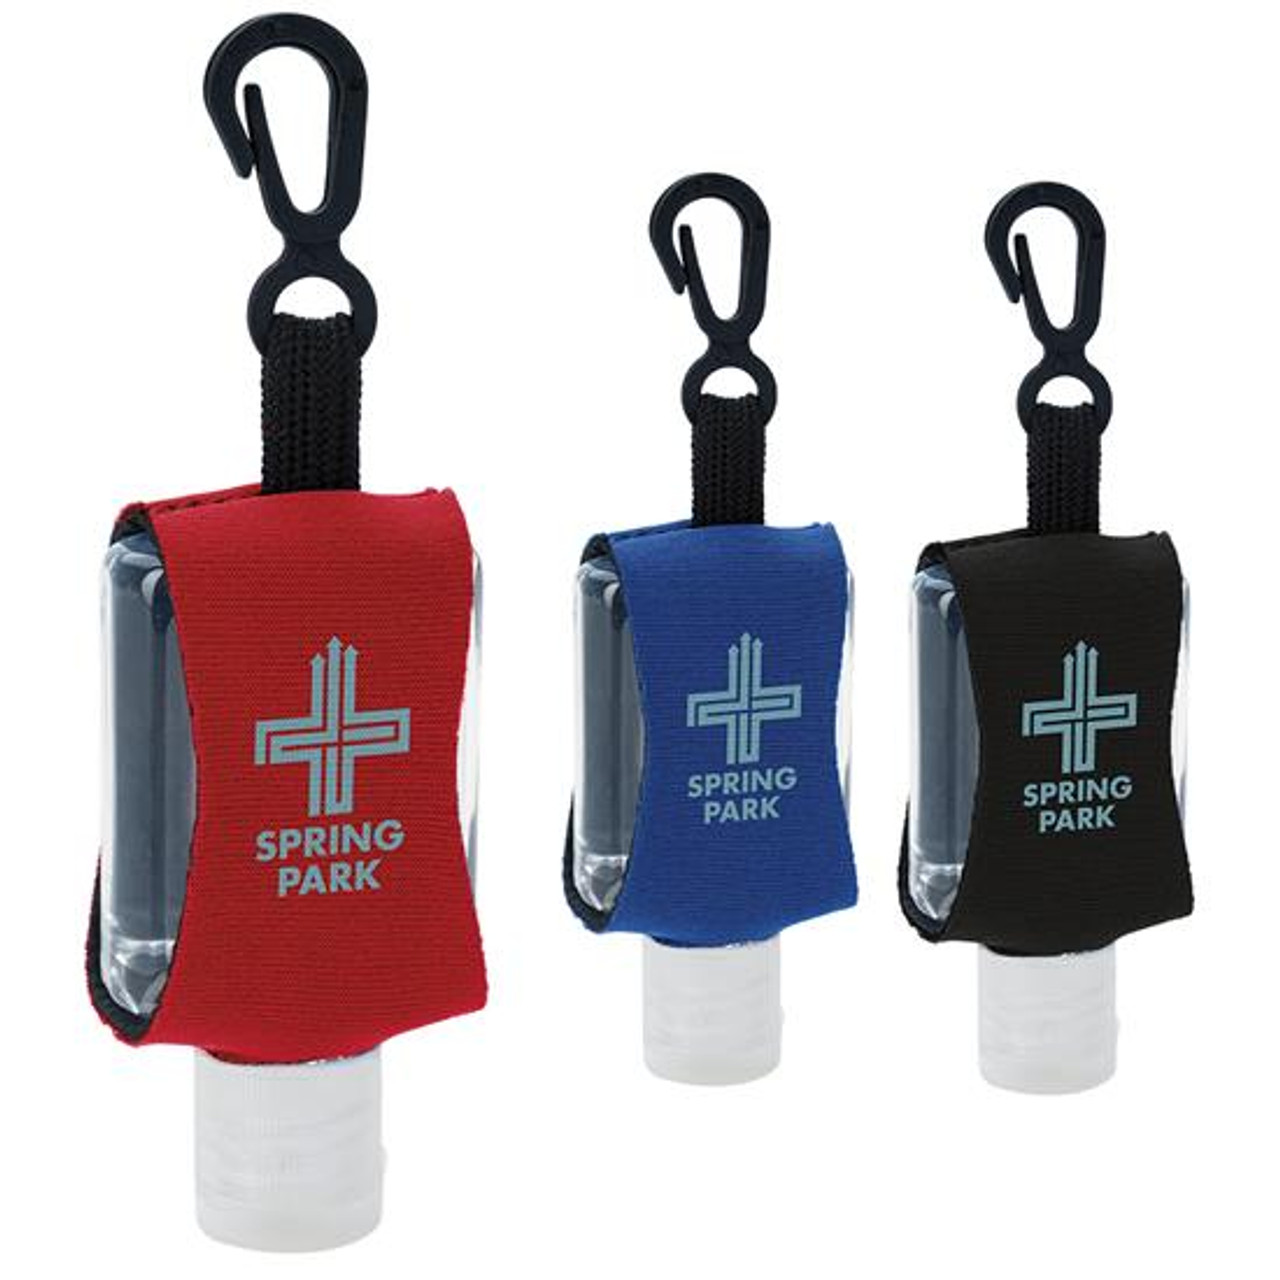 Hand Sanitizer with Leash .5 oz